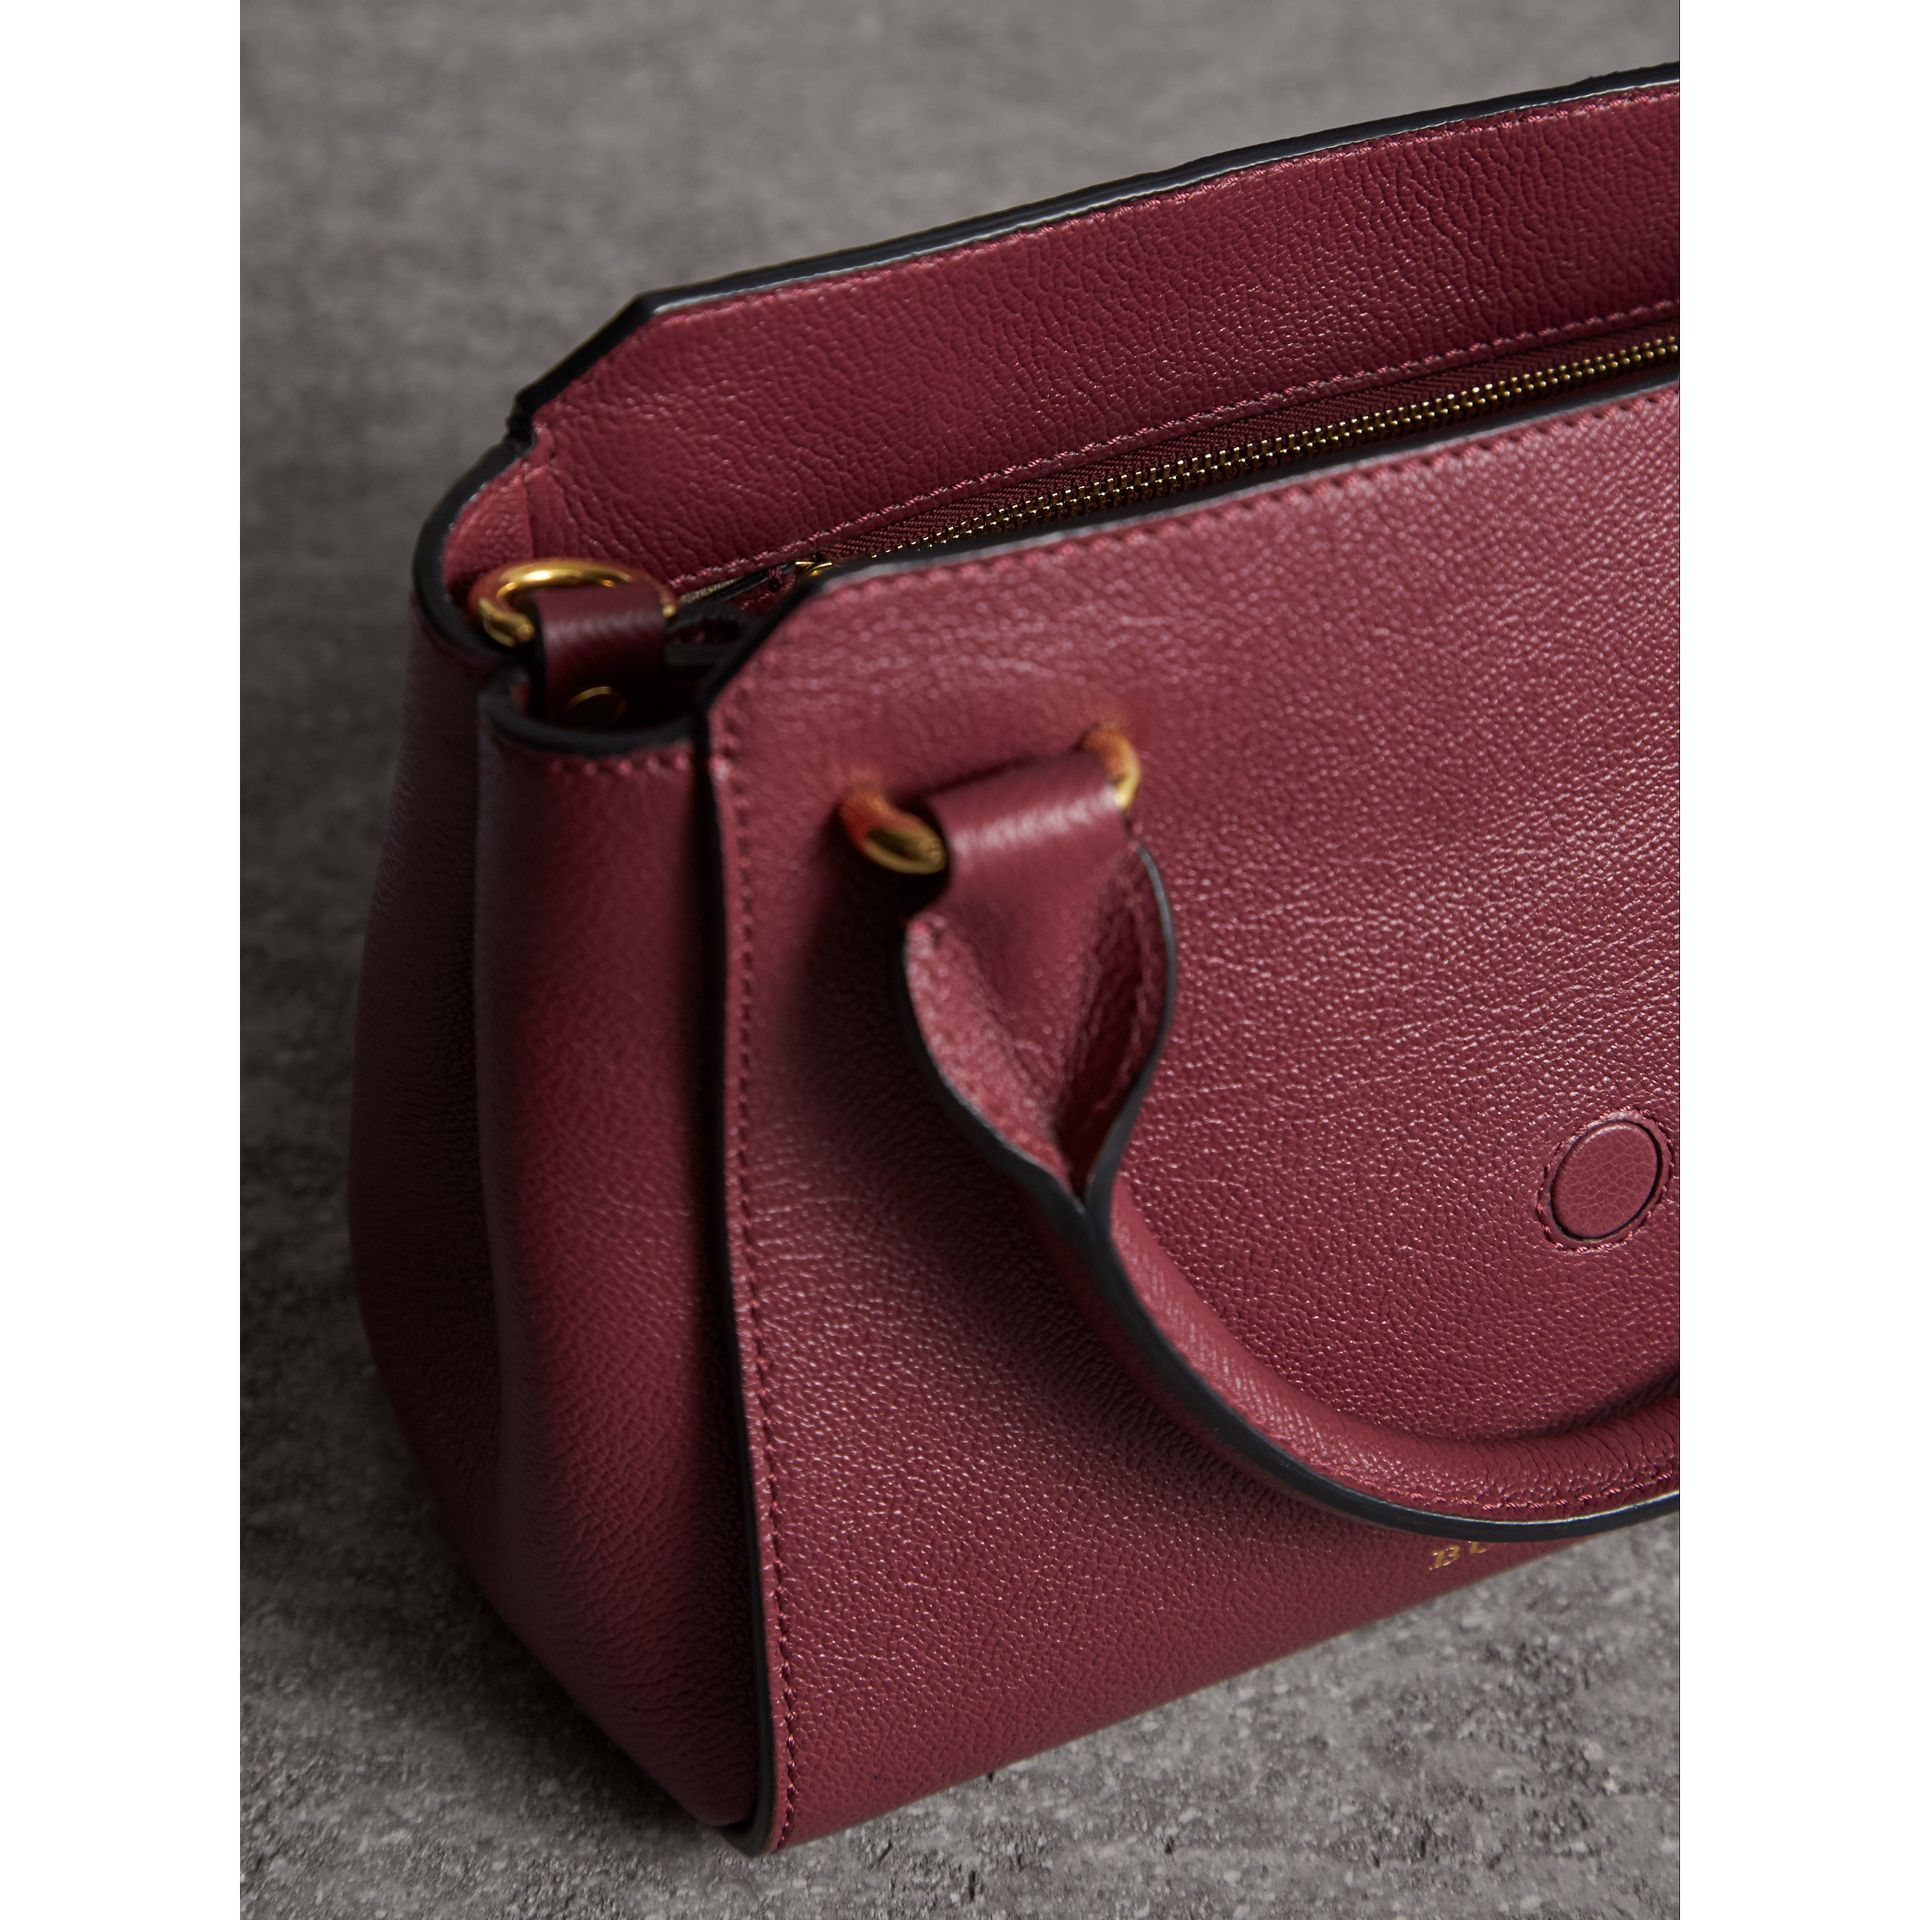 Borsa tote The Buckle piccola in pelle a grana (Prugna Scuro) - Donna | Burberry - immagine della galleria 6